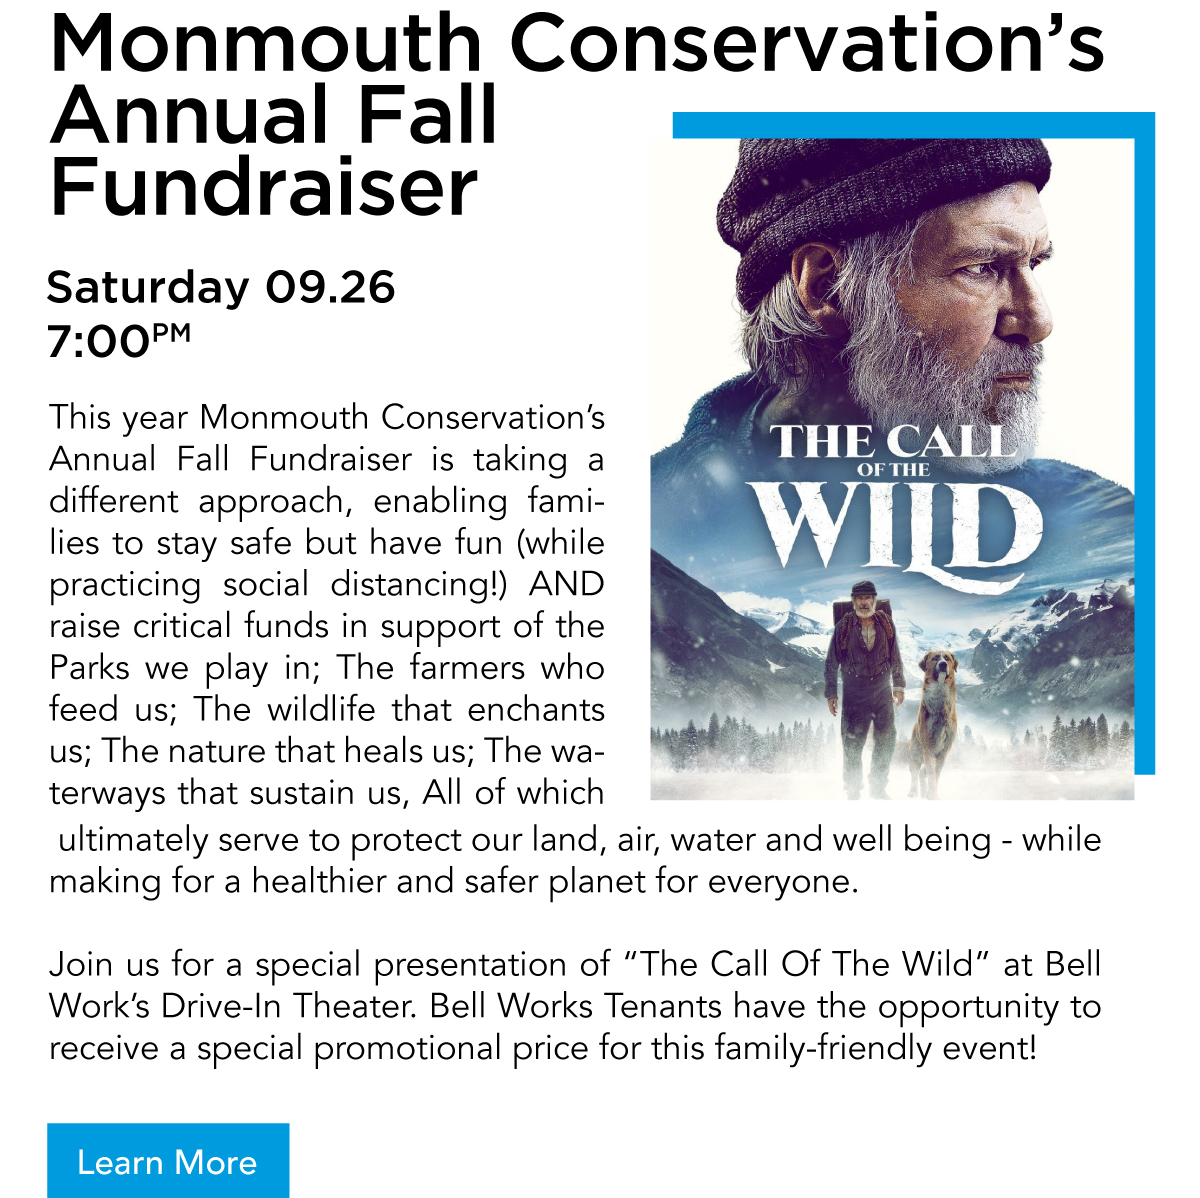 Monmouth Conservation's Annual Fall Fundraiser